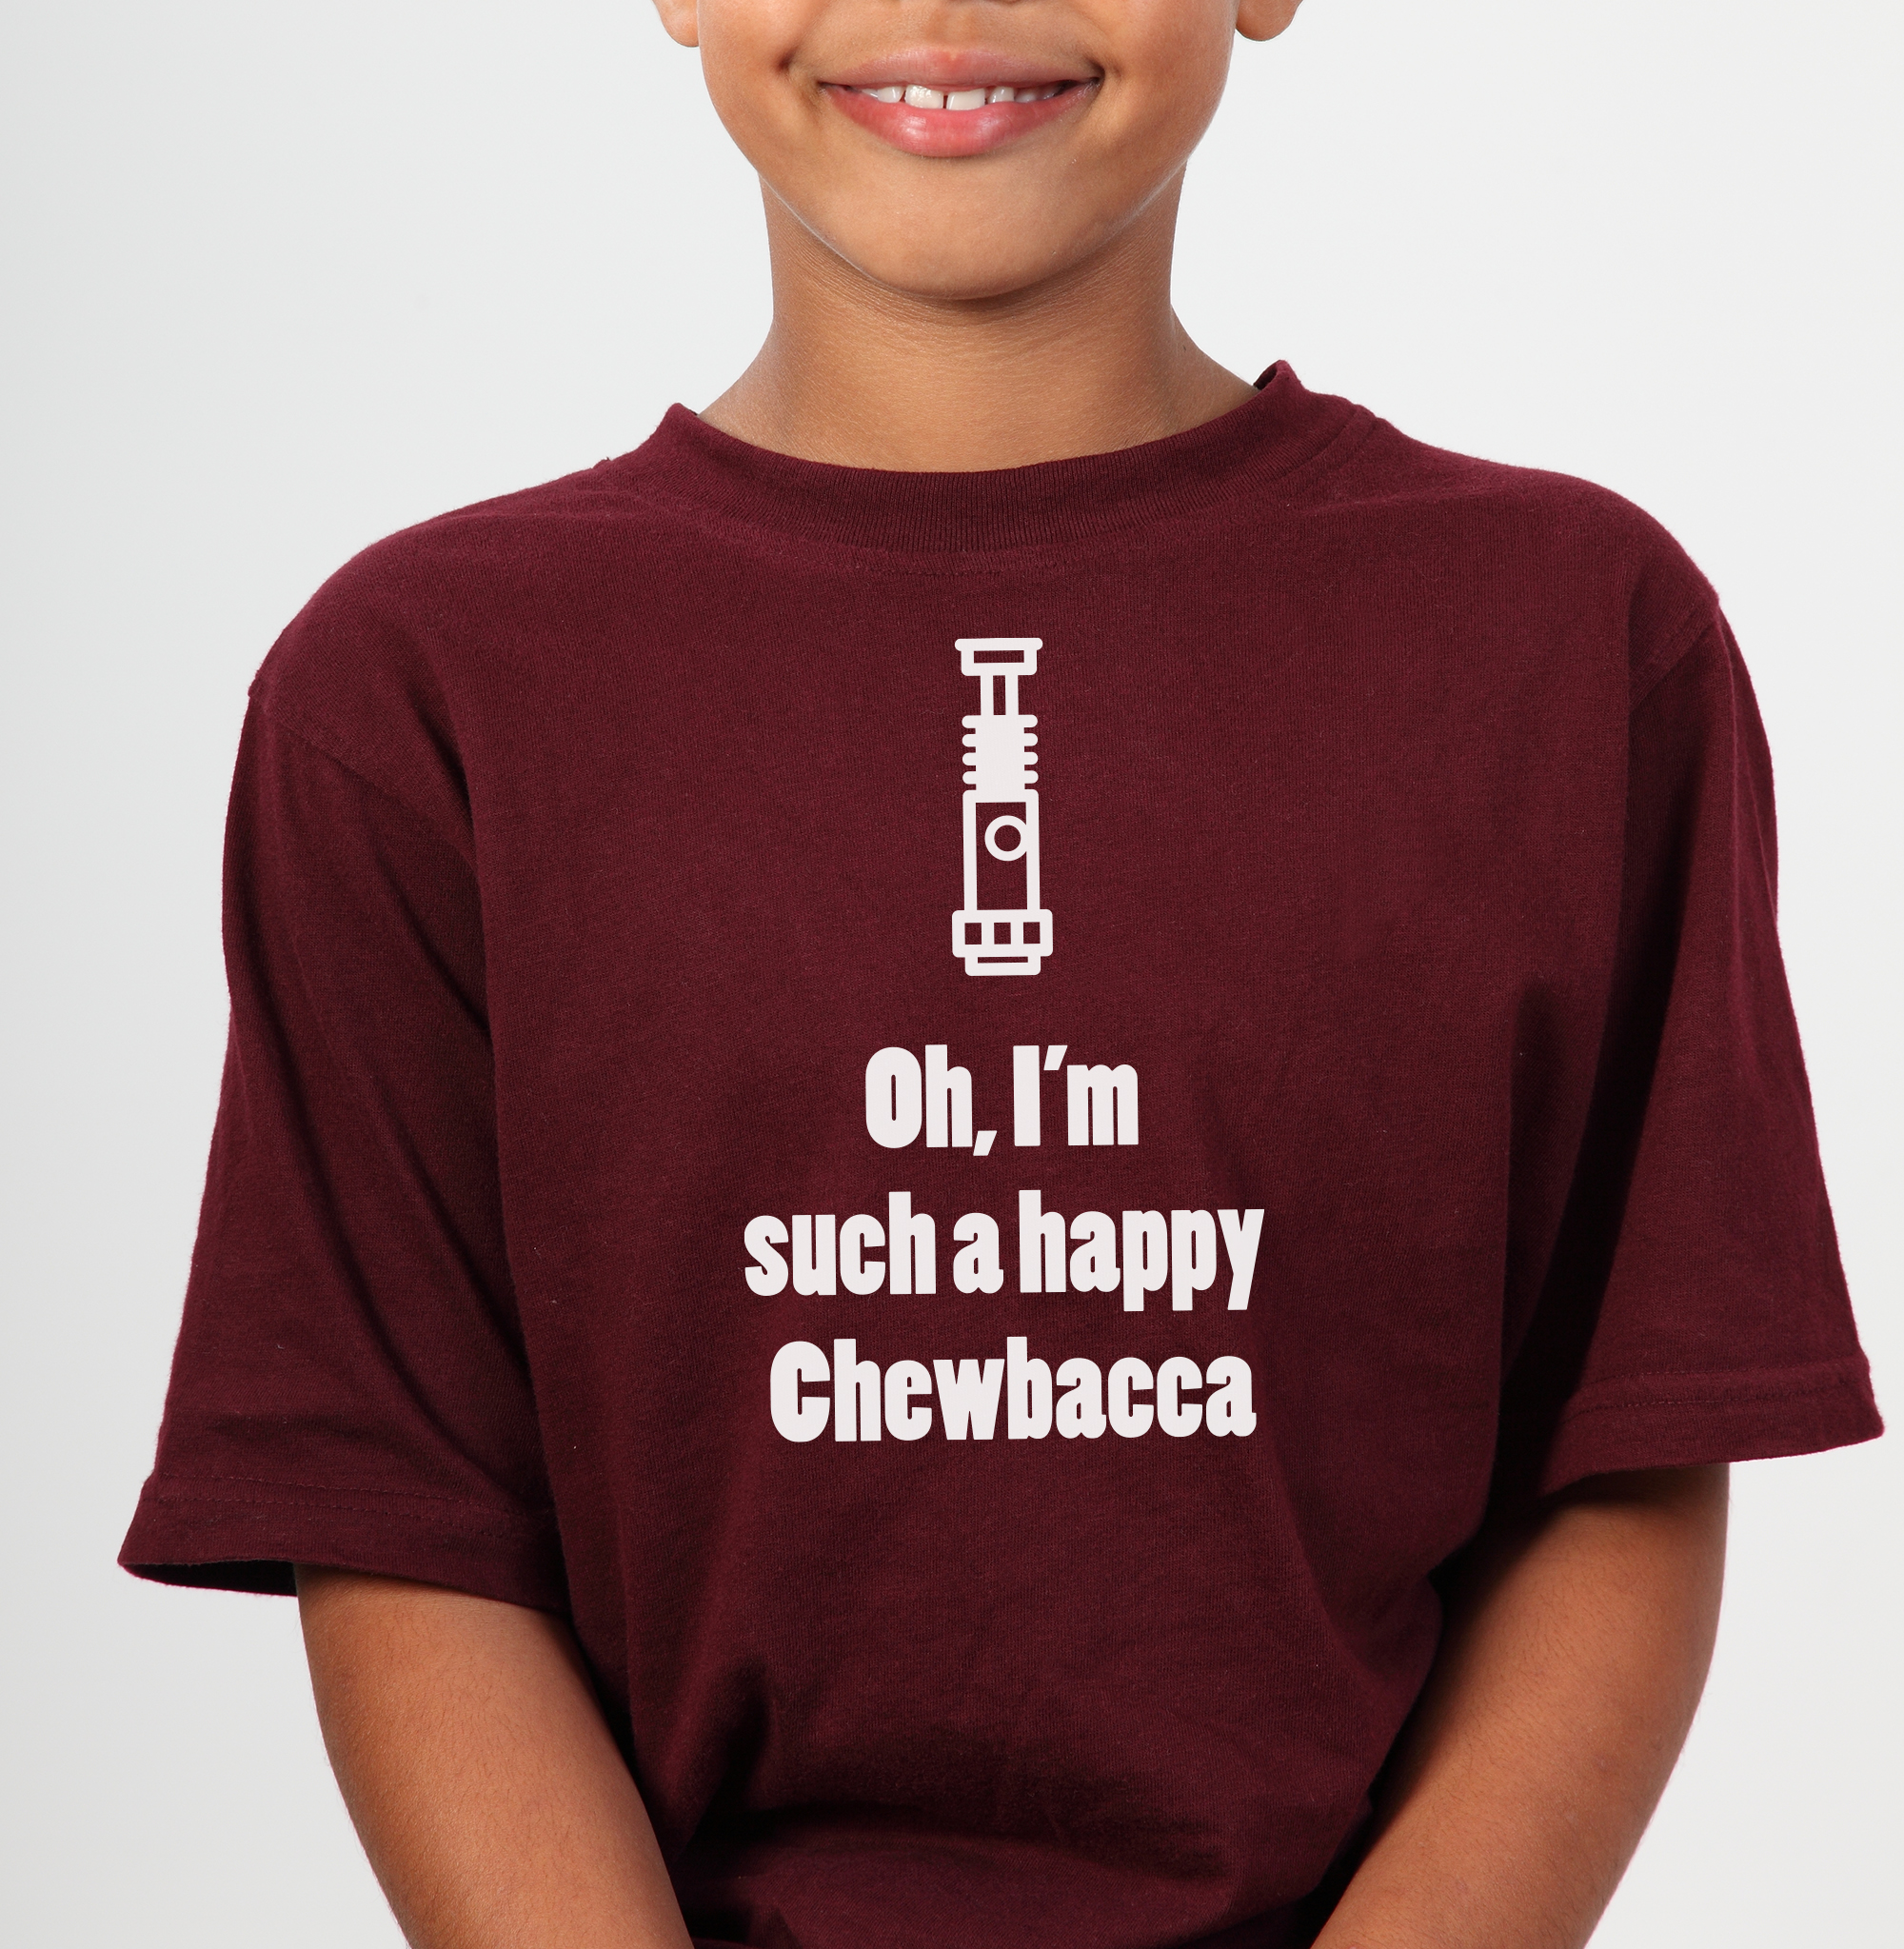 happy chewbacca t-shirt design concept